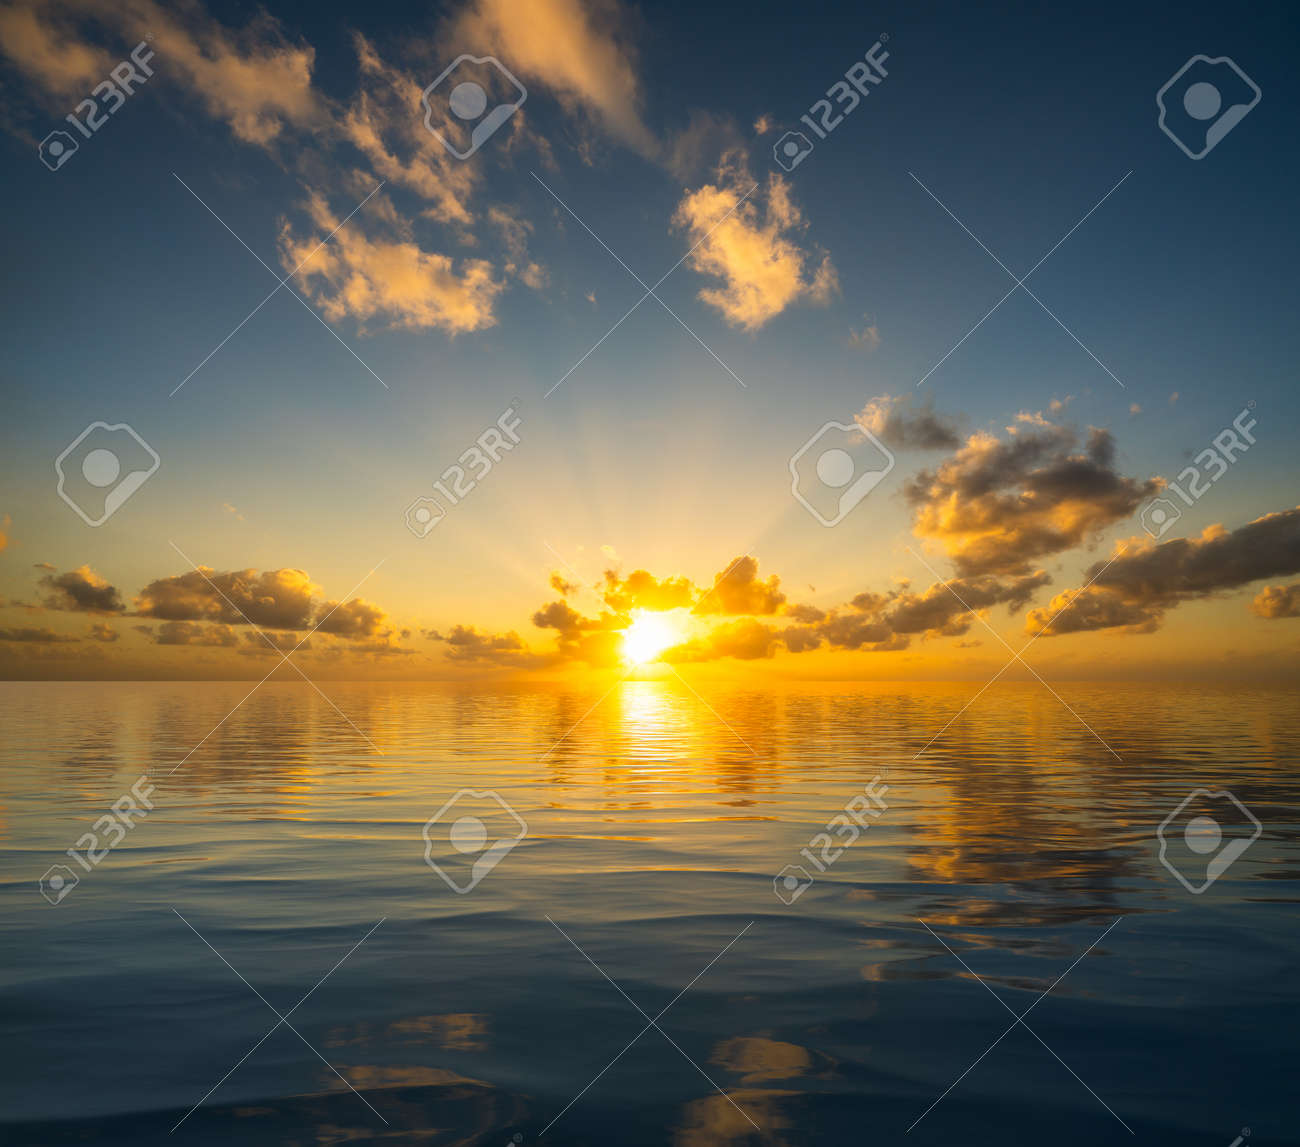 Dramatic sunrise or sunset reflected into the calm waters of an artificial ocean to represent peace or heaven - 154950427